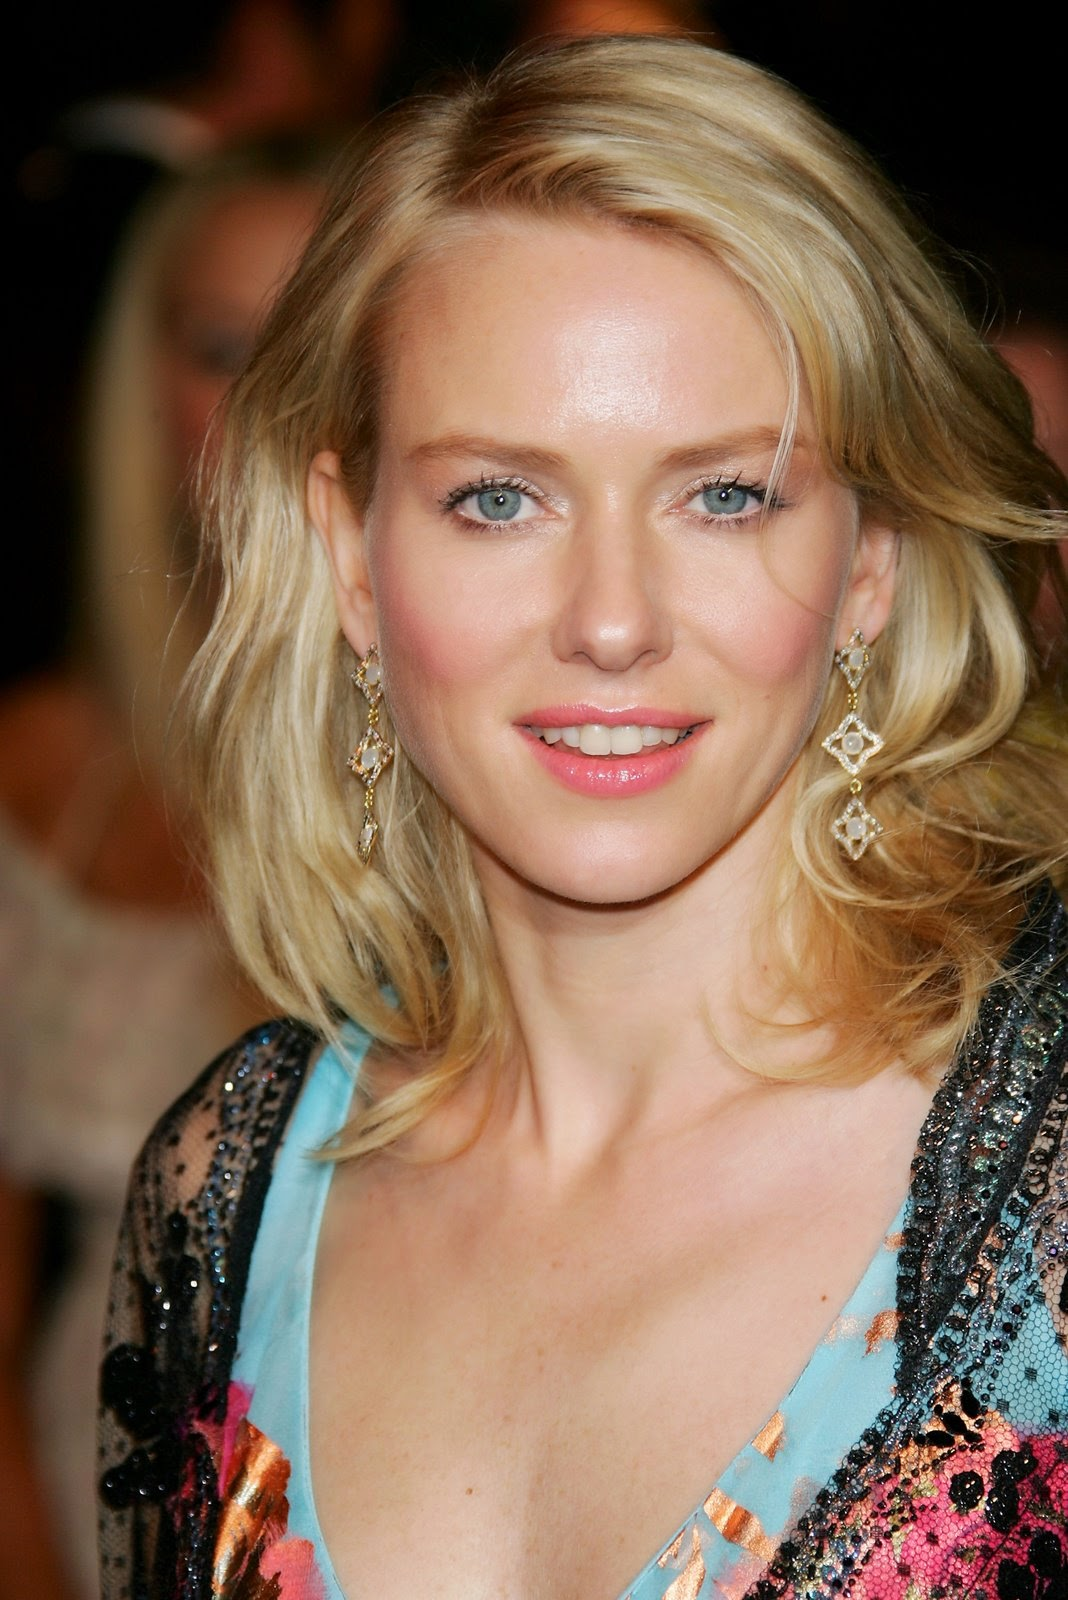 Darrow >> Super star life style photo gallary : Naomi Ellen Watts